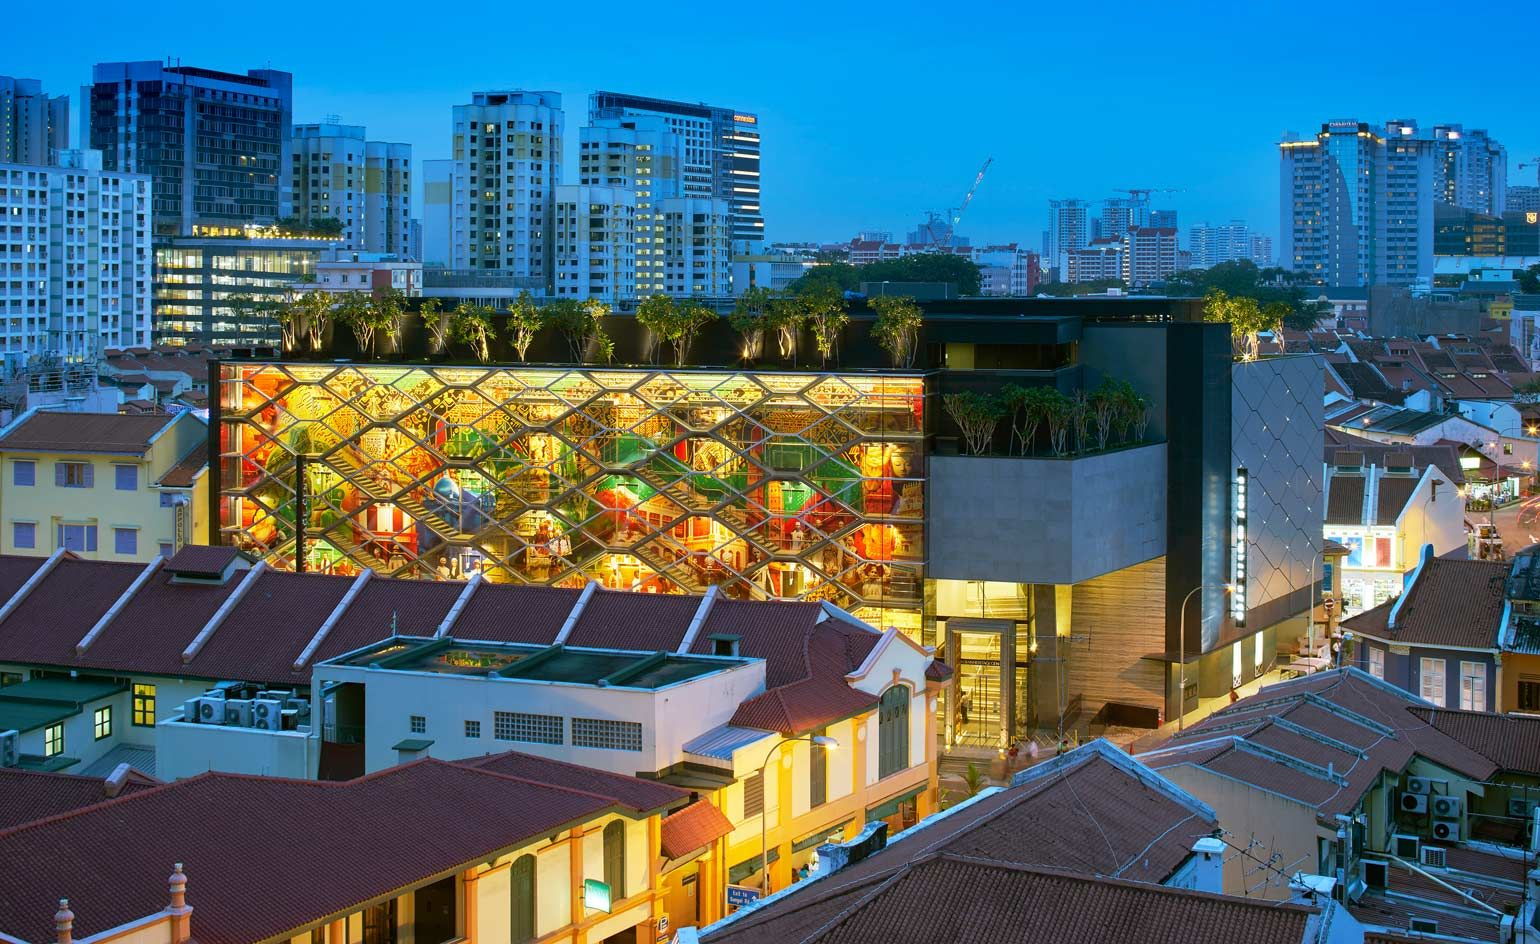 Singapore S Colourful New Indian Heritage Centre Mixes History And Modernity Cultural Architecture World Architecture Festival Architecture Wallpaper